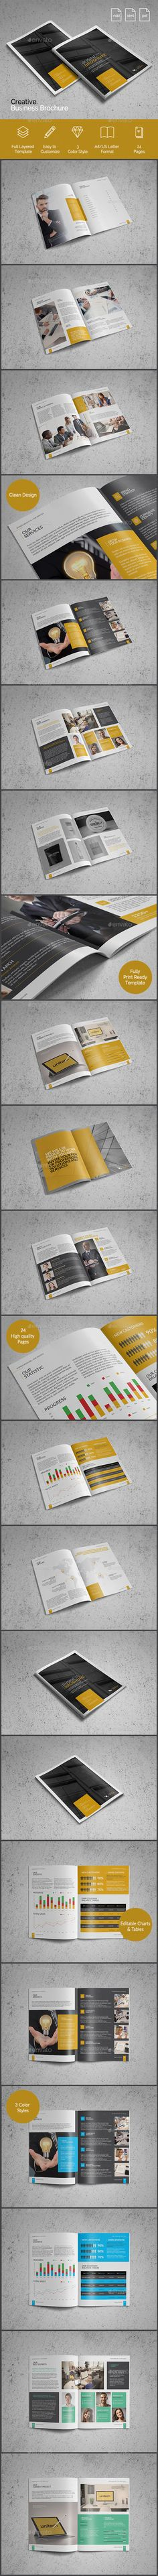 Creative Business Brochure - Brochures Print Templates Download here : https://graphicriver.net/item/creative-business-brochure/19262577?s_rank=143&ref=Al-fatih